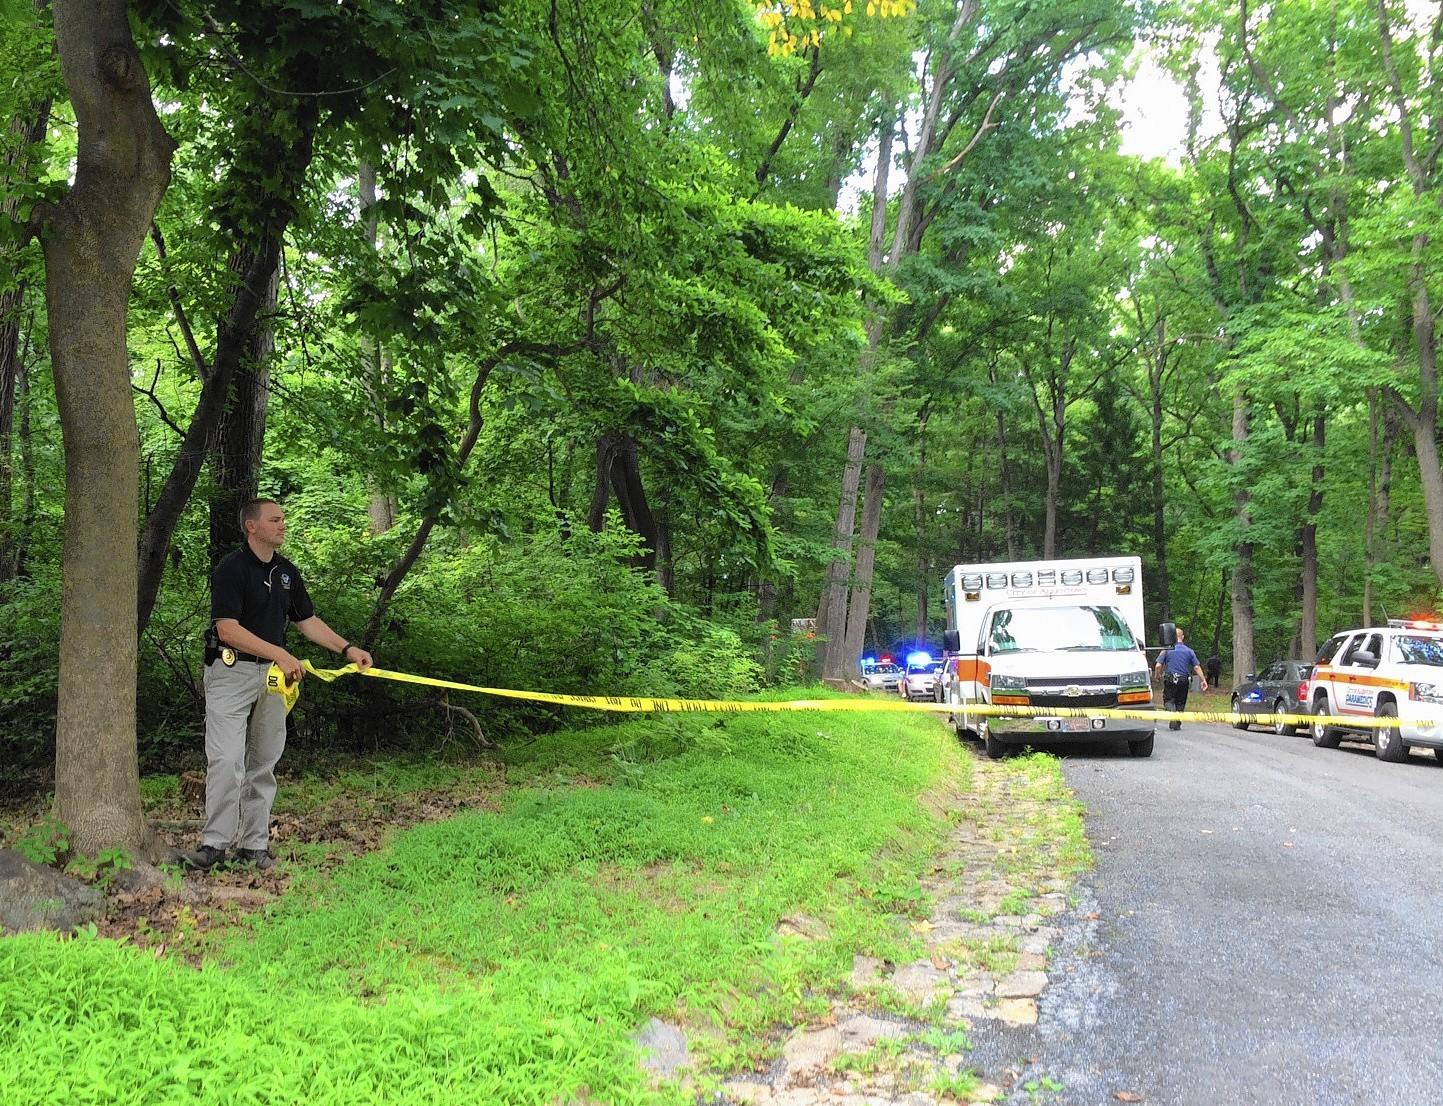 Authorities closed off Reservoir Road in Allentown Tuesday after a reported drowning in an abandoned quarry near the city's capped reservoir in South Mountain Reservoir Park. The Lehigh County Coroner's Office on Wednesday identified the person recovered from the quarry as Matthew Ruch, 24, of Allentown.